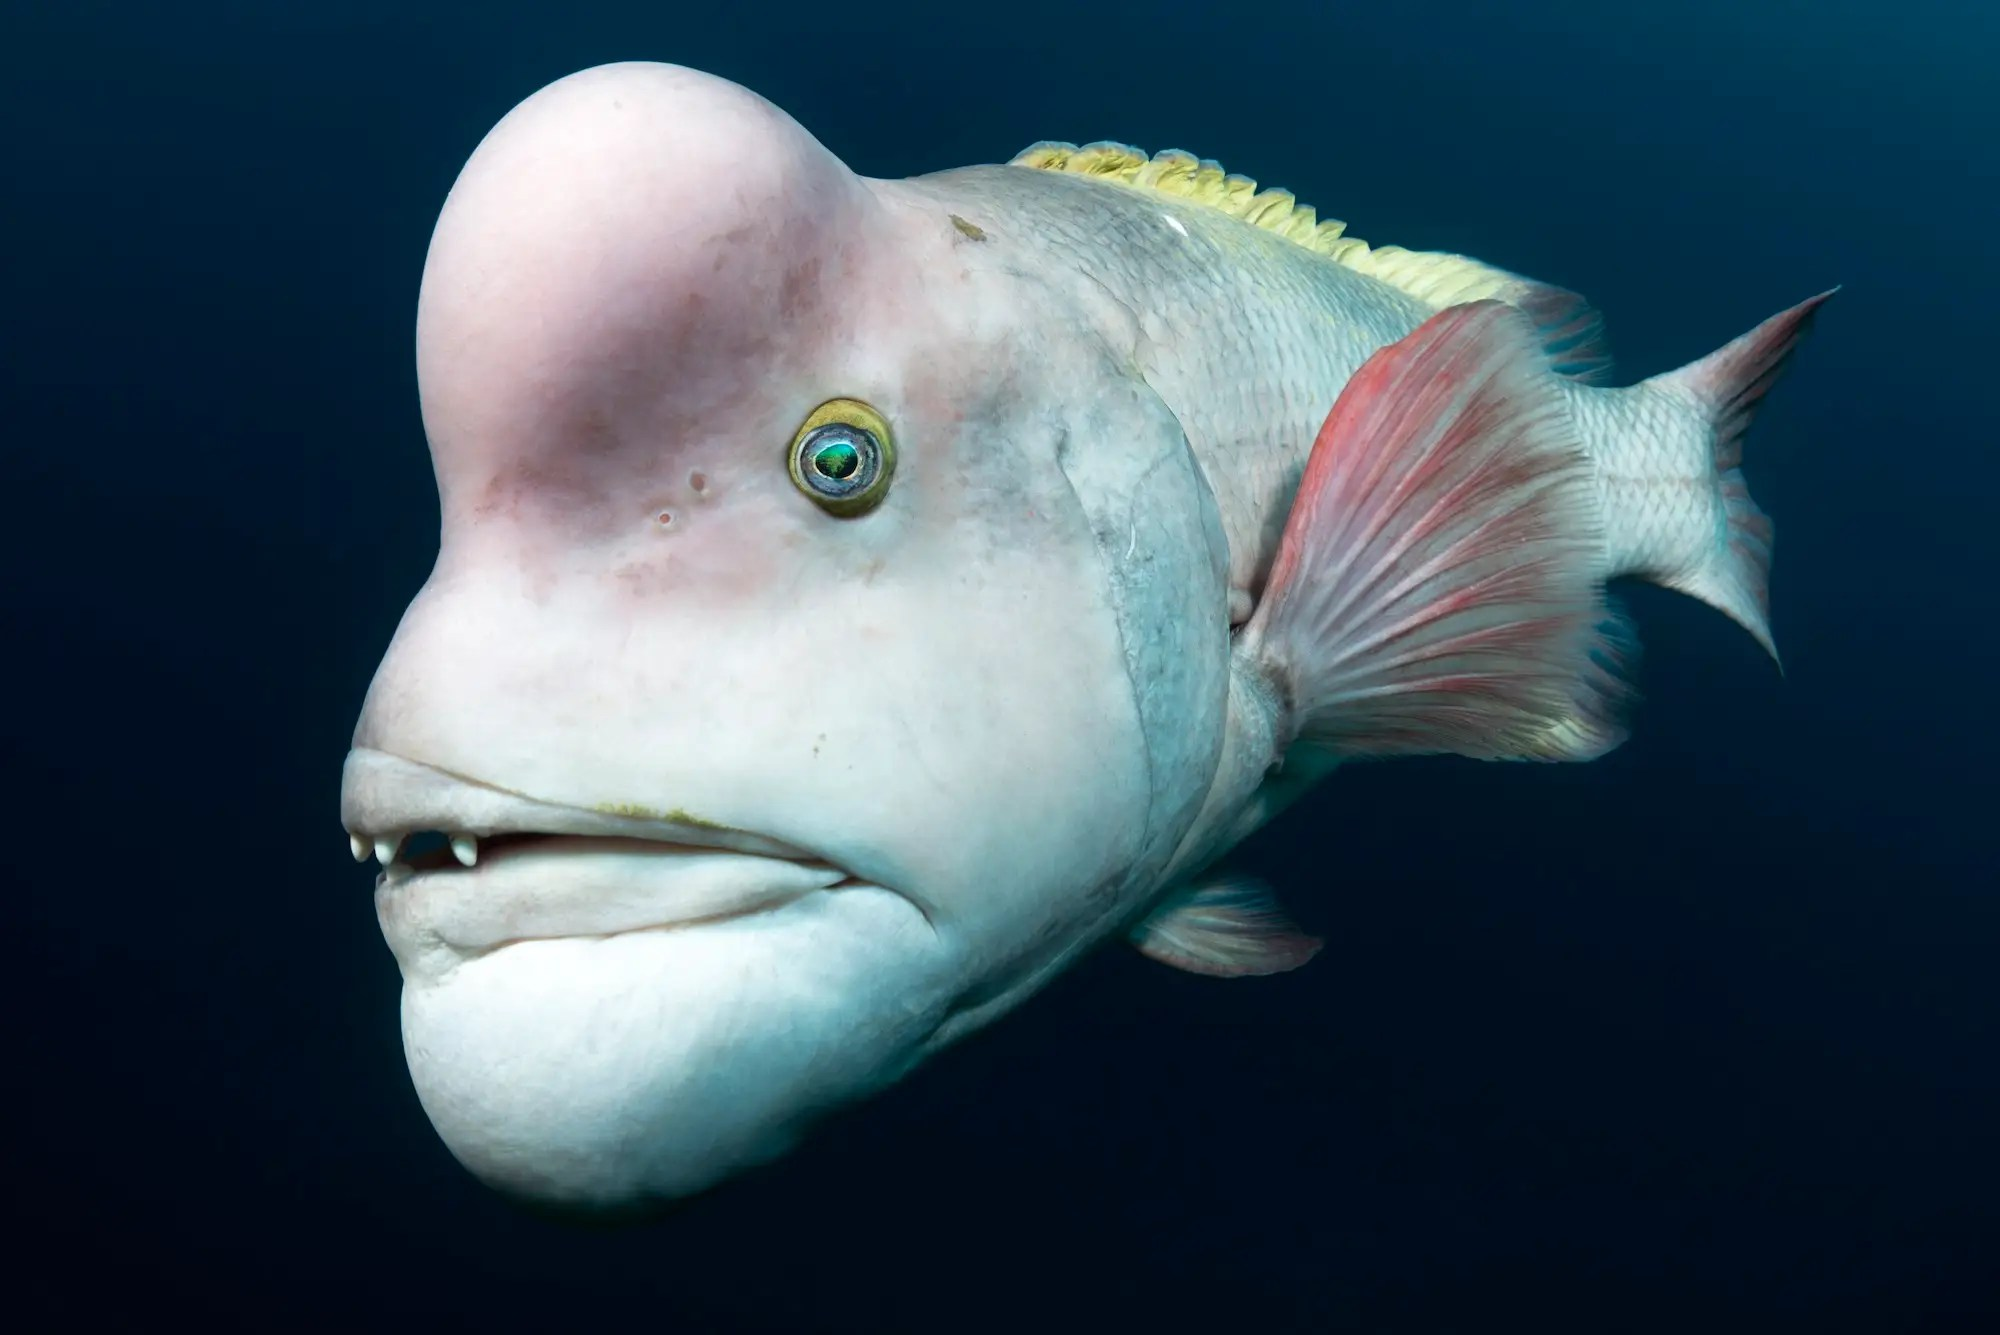 The most gorgeous wildlife photos of 2018 shine a light on nature's bizarre and wonderful beauty underwater photographer tony wu was tickled to meet this asian sheepshead wrasse off the coast of japans sado island the fishs forehead reveals the burning desire of a male in love he said